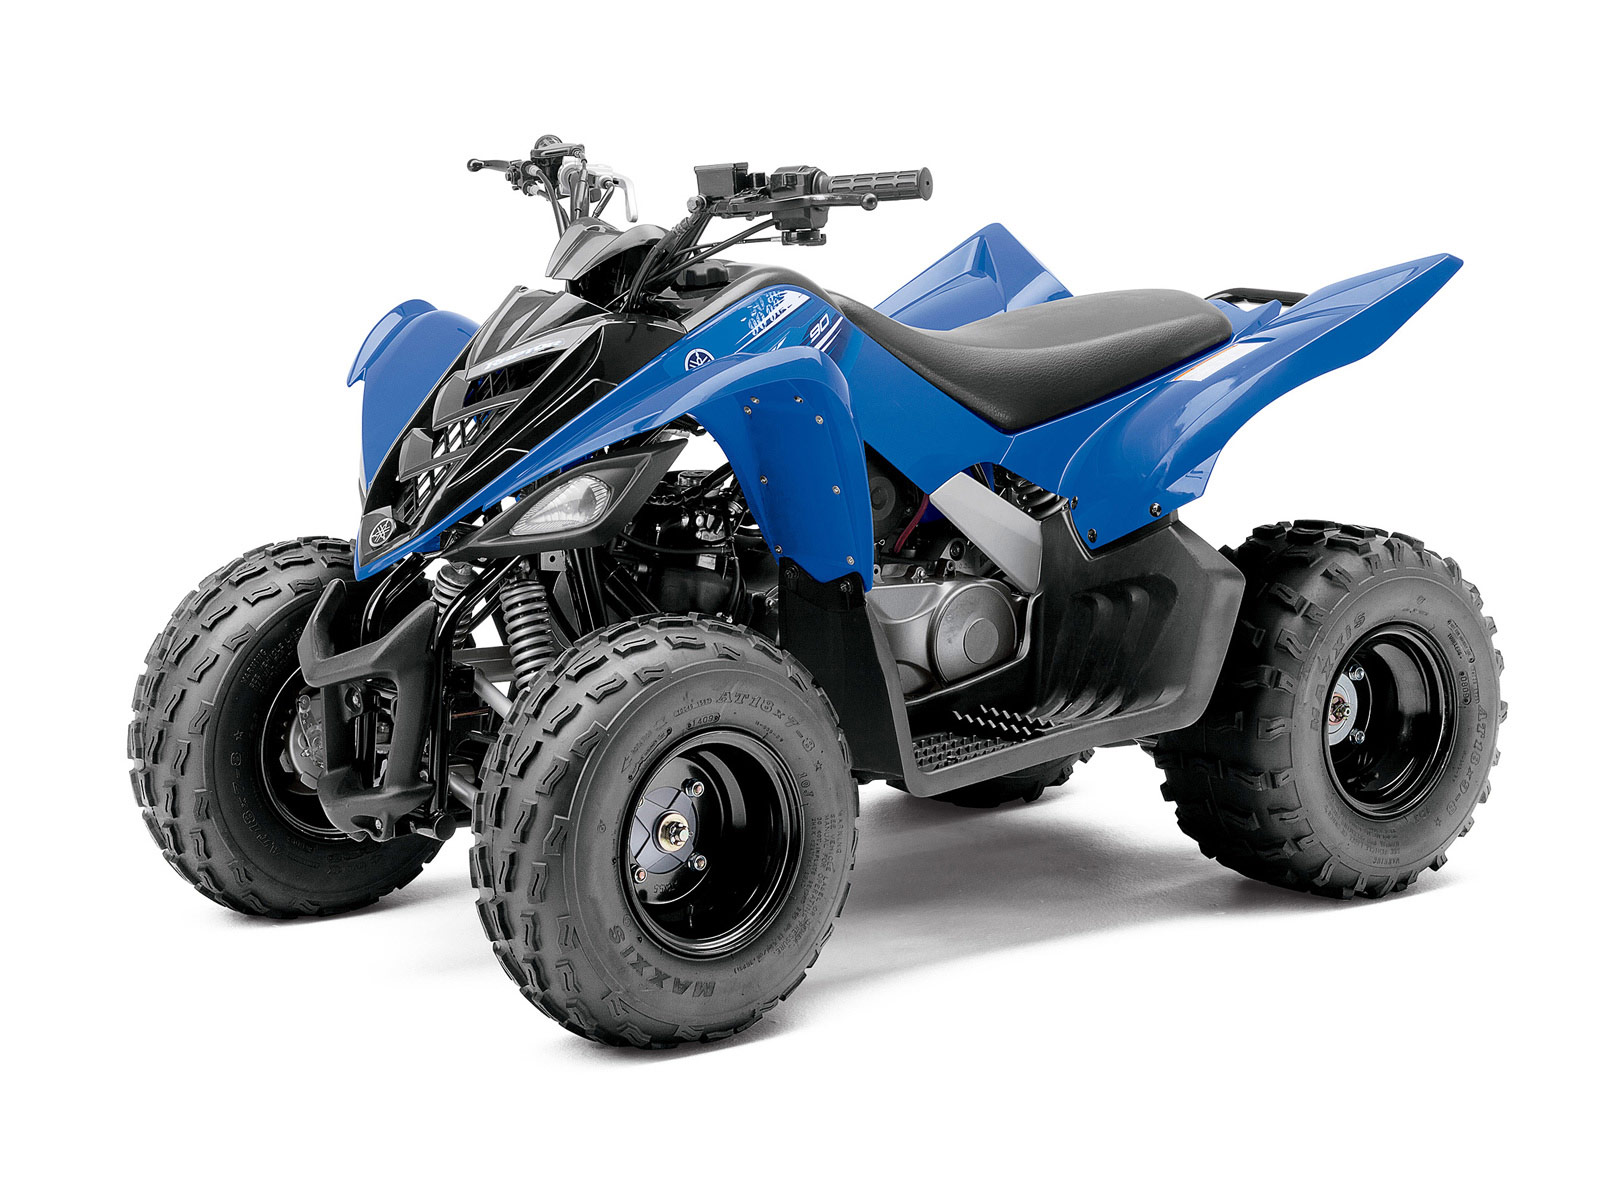 2012 YAMAHA Raptor 90 Insurance Information, atv pictures